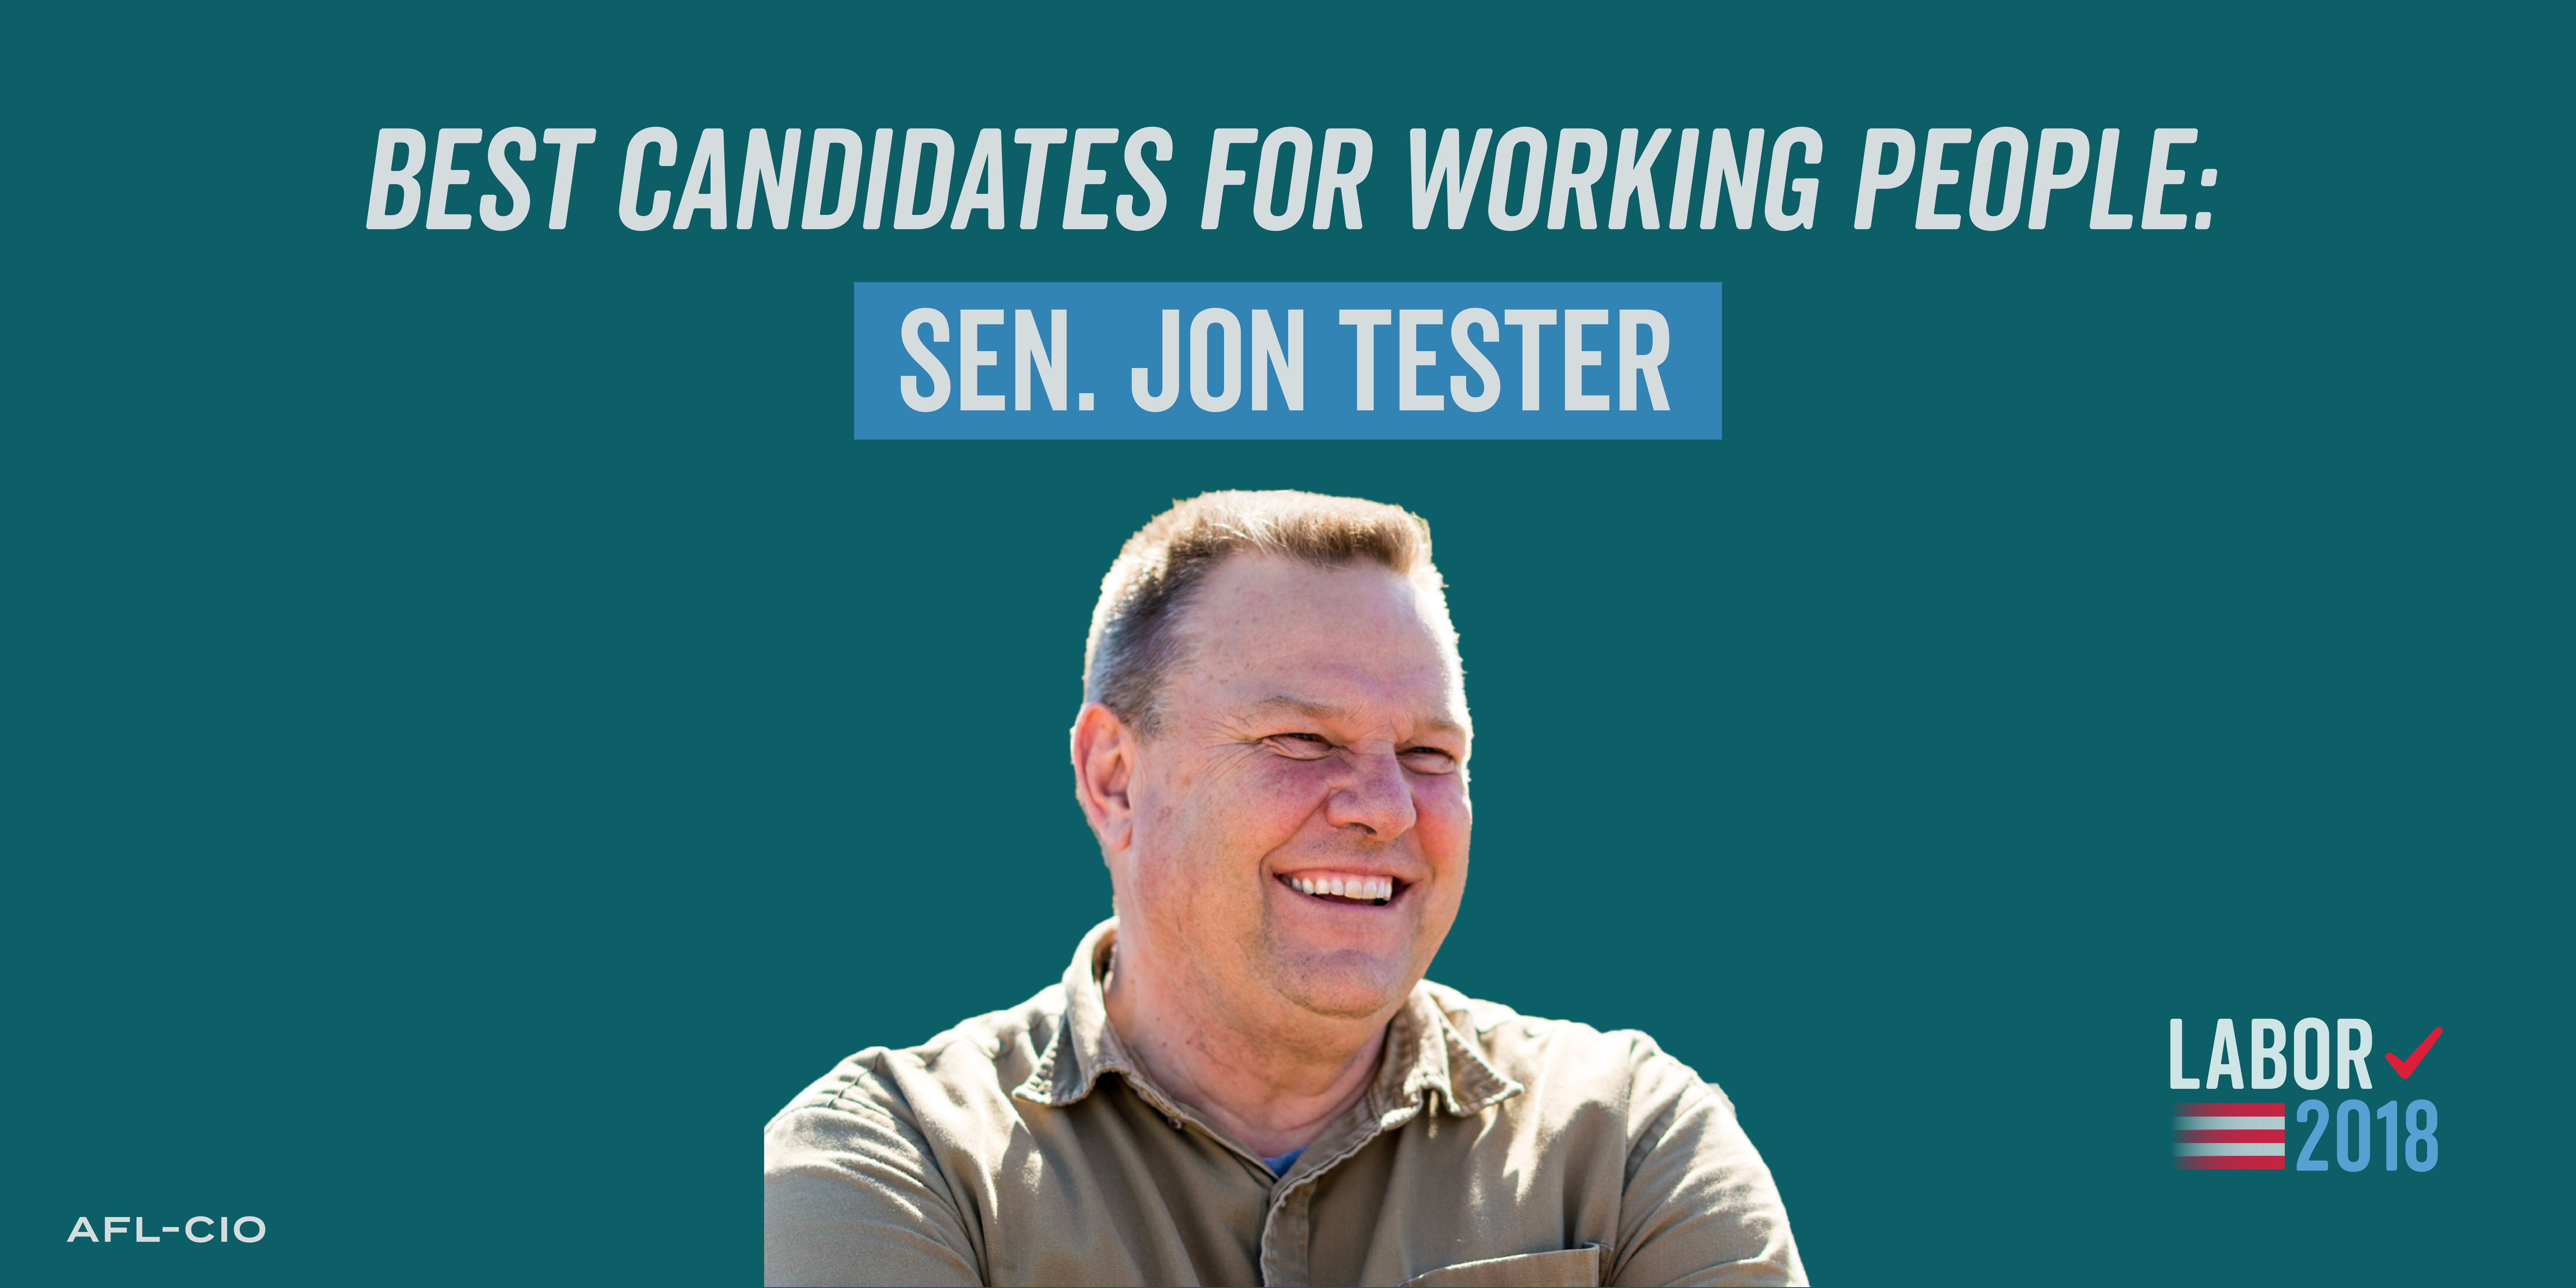 Best Candidates for Working People: Jon Tester